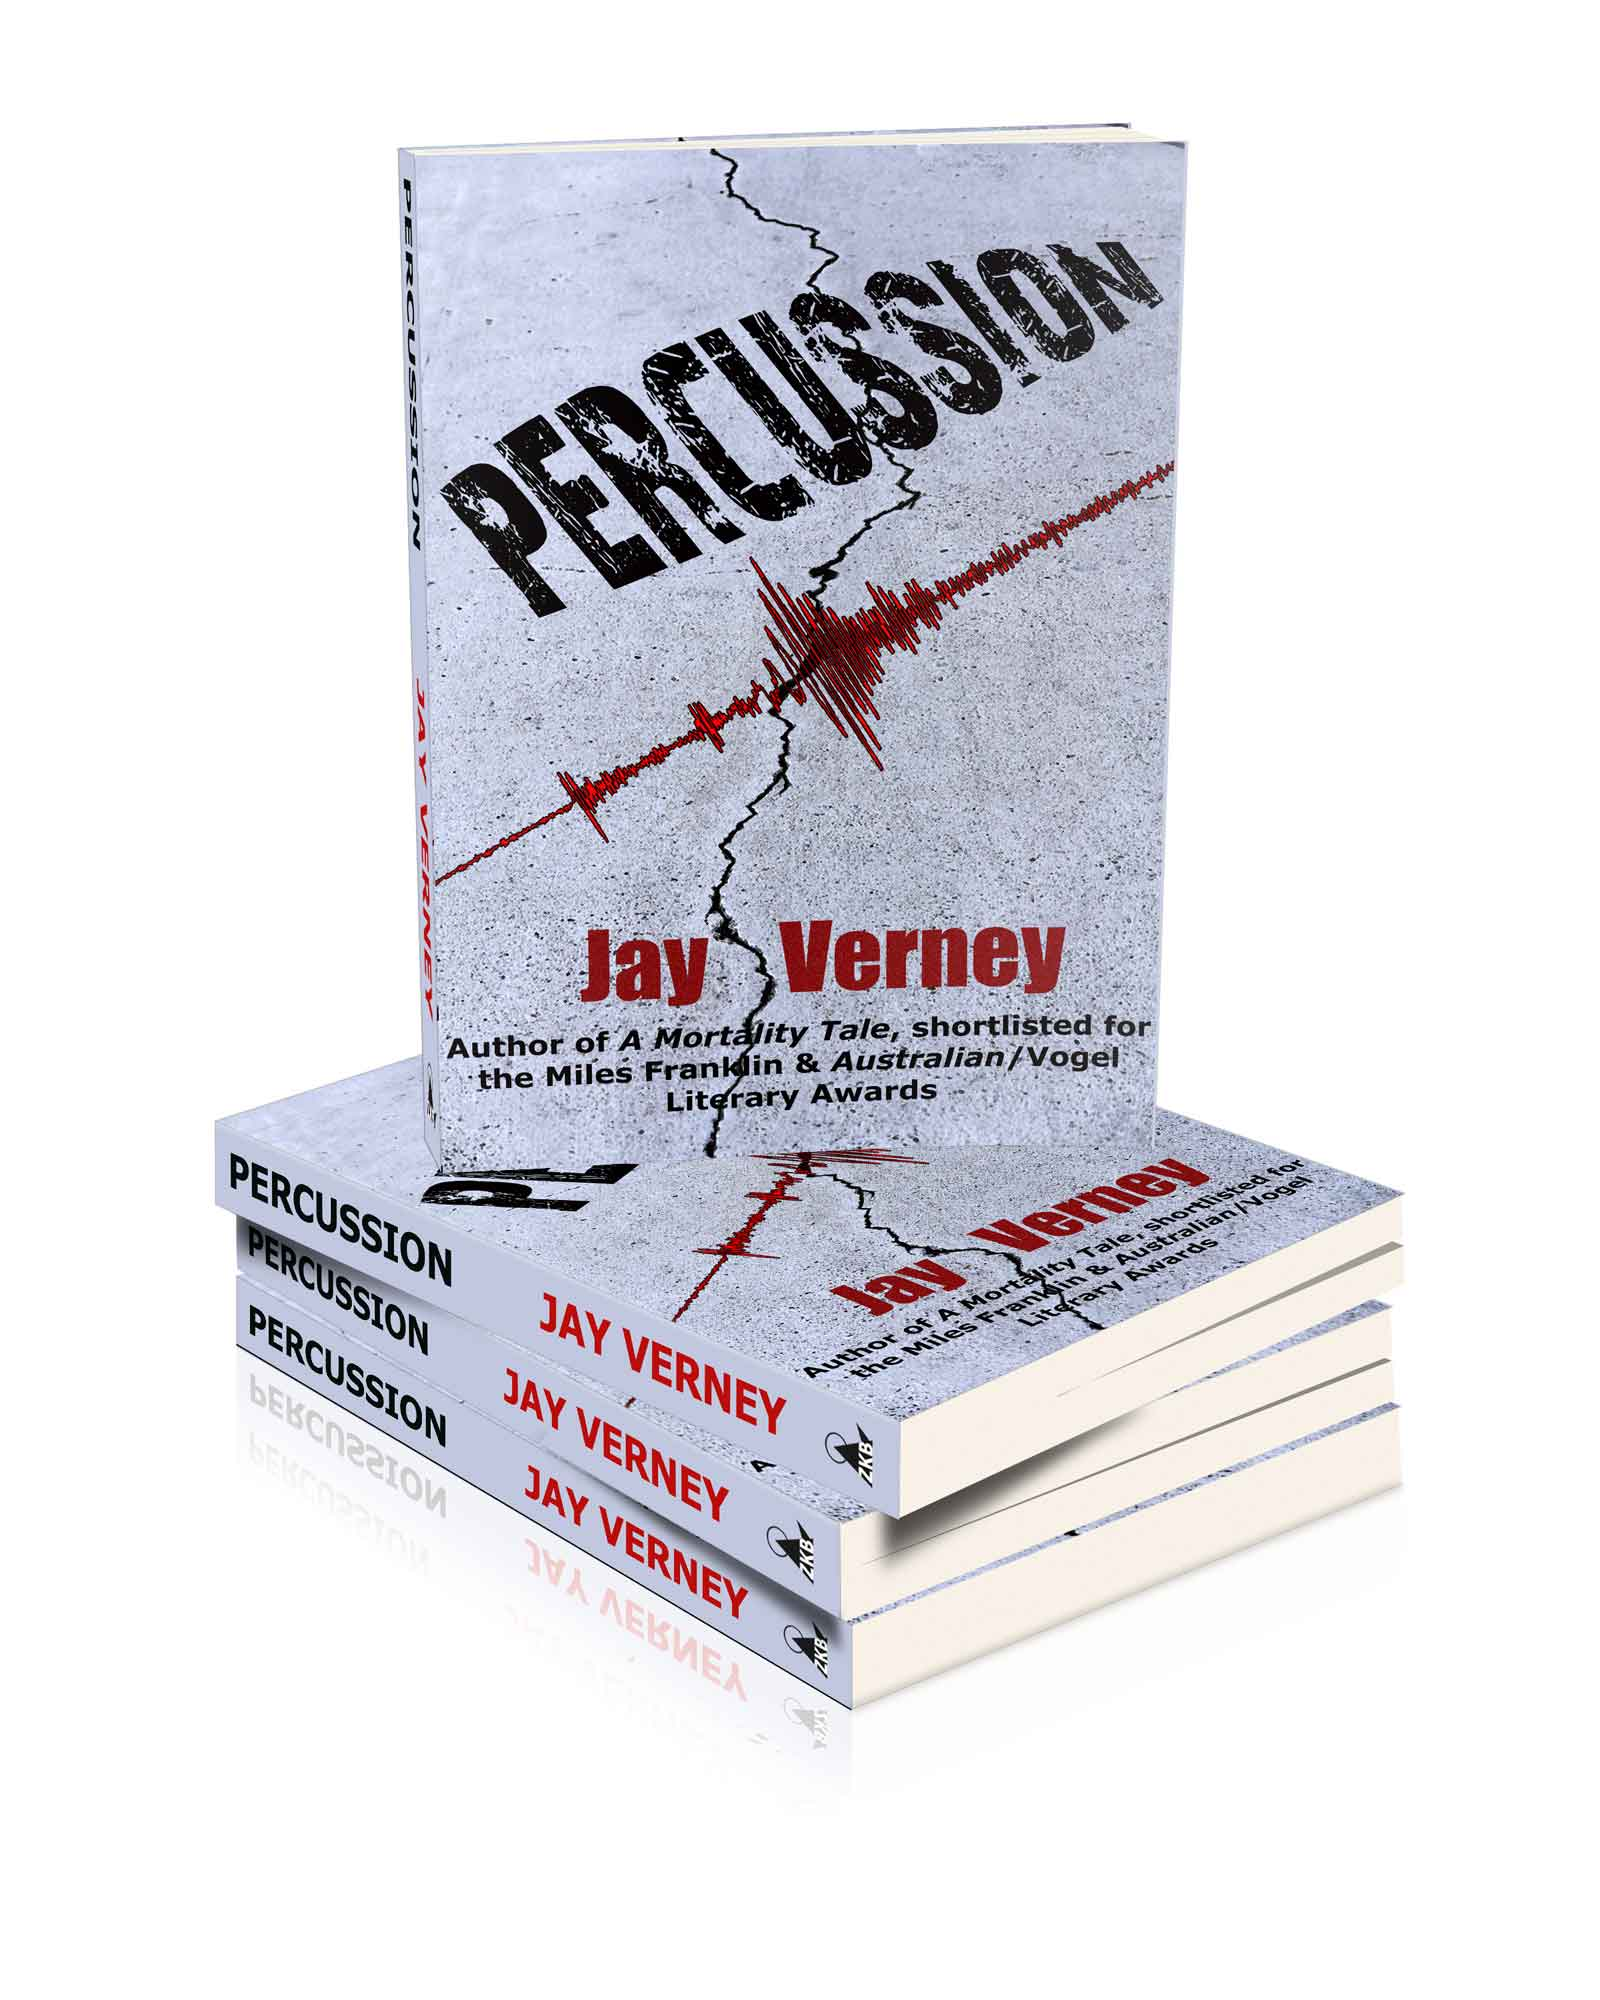 Book cover image for Percussion by Jay Verney